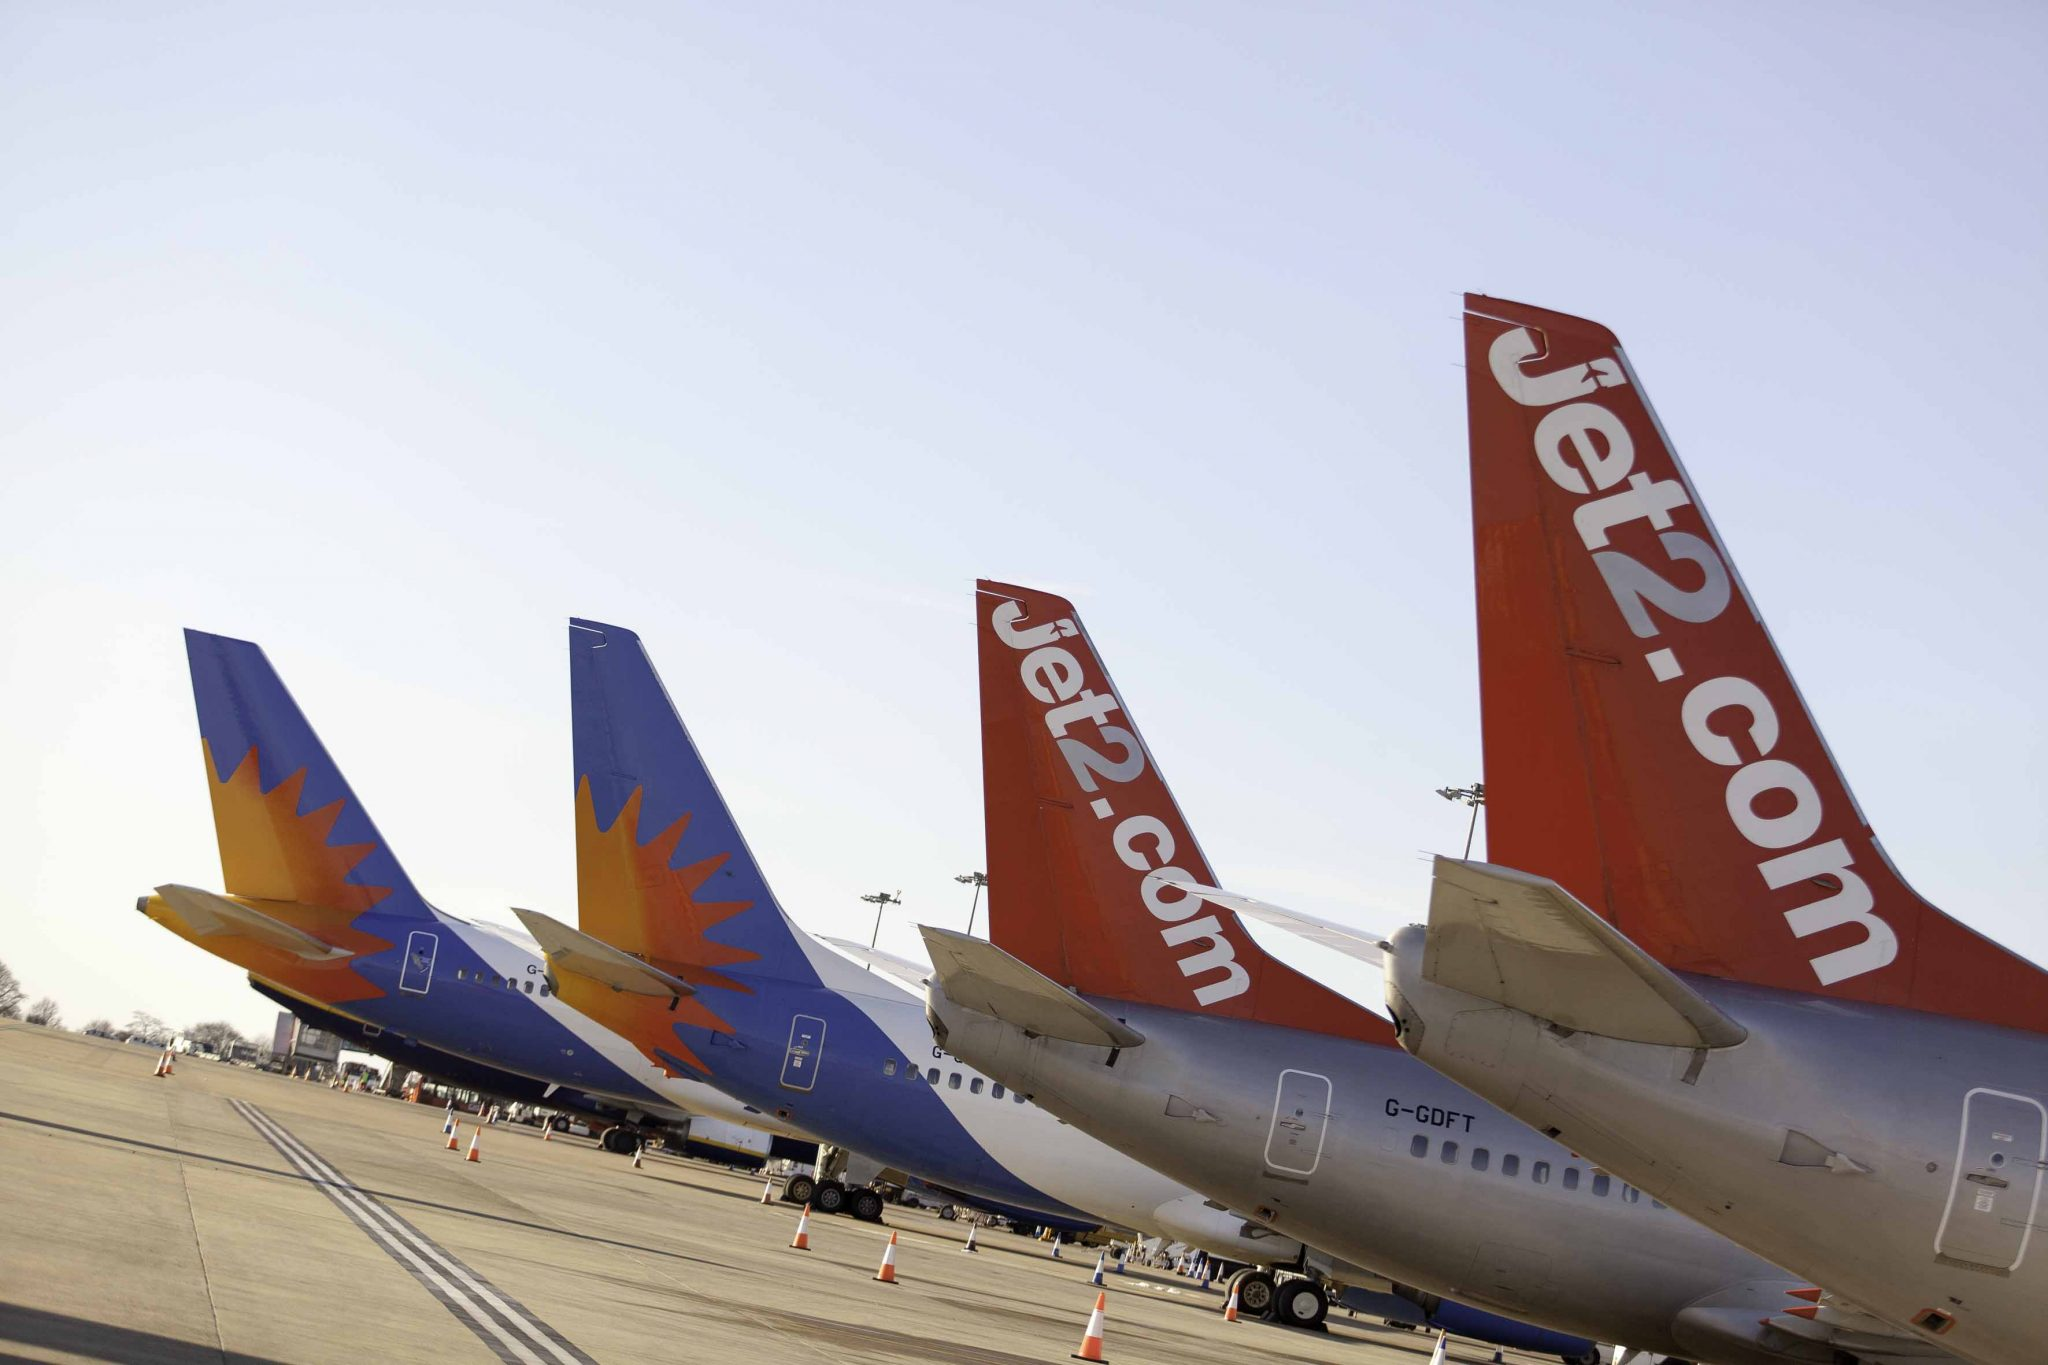 Jet2.com and Jet2holidays boost October capacity to the Canary Islands from Belfast International Airport